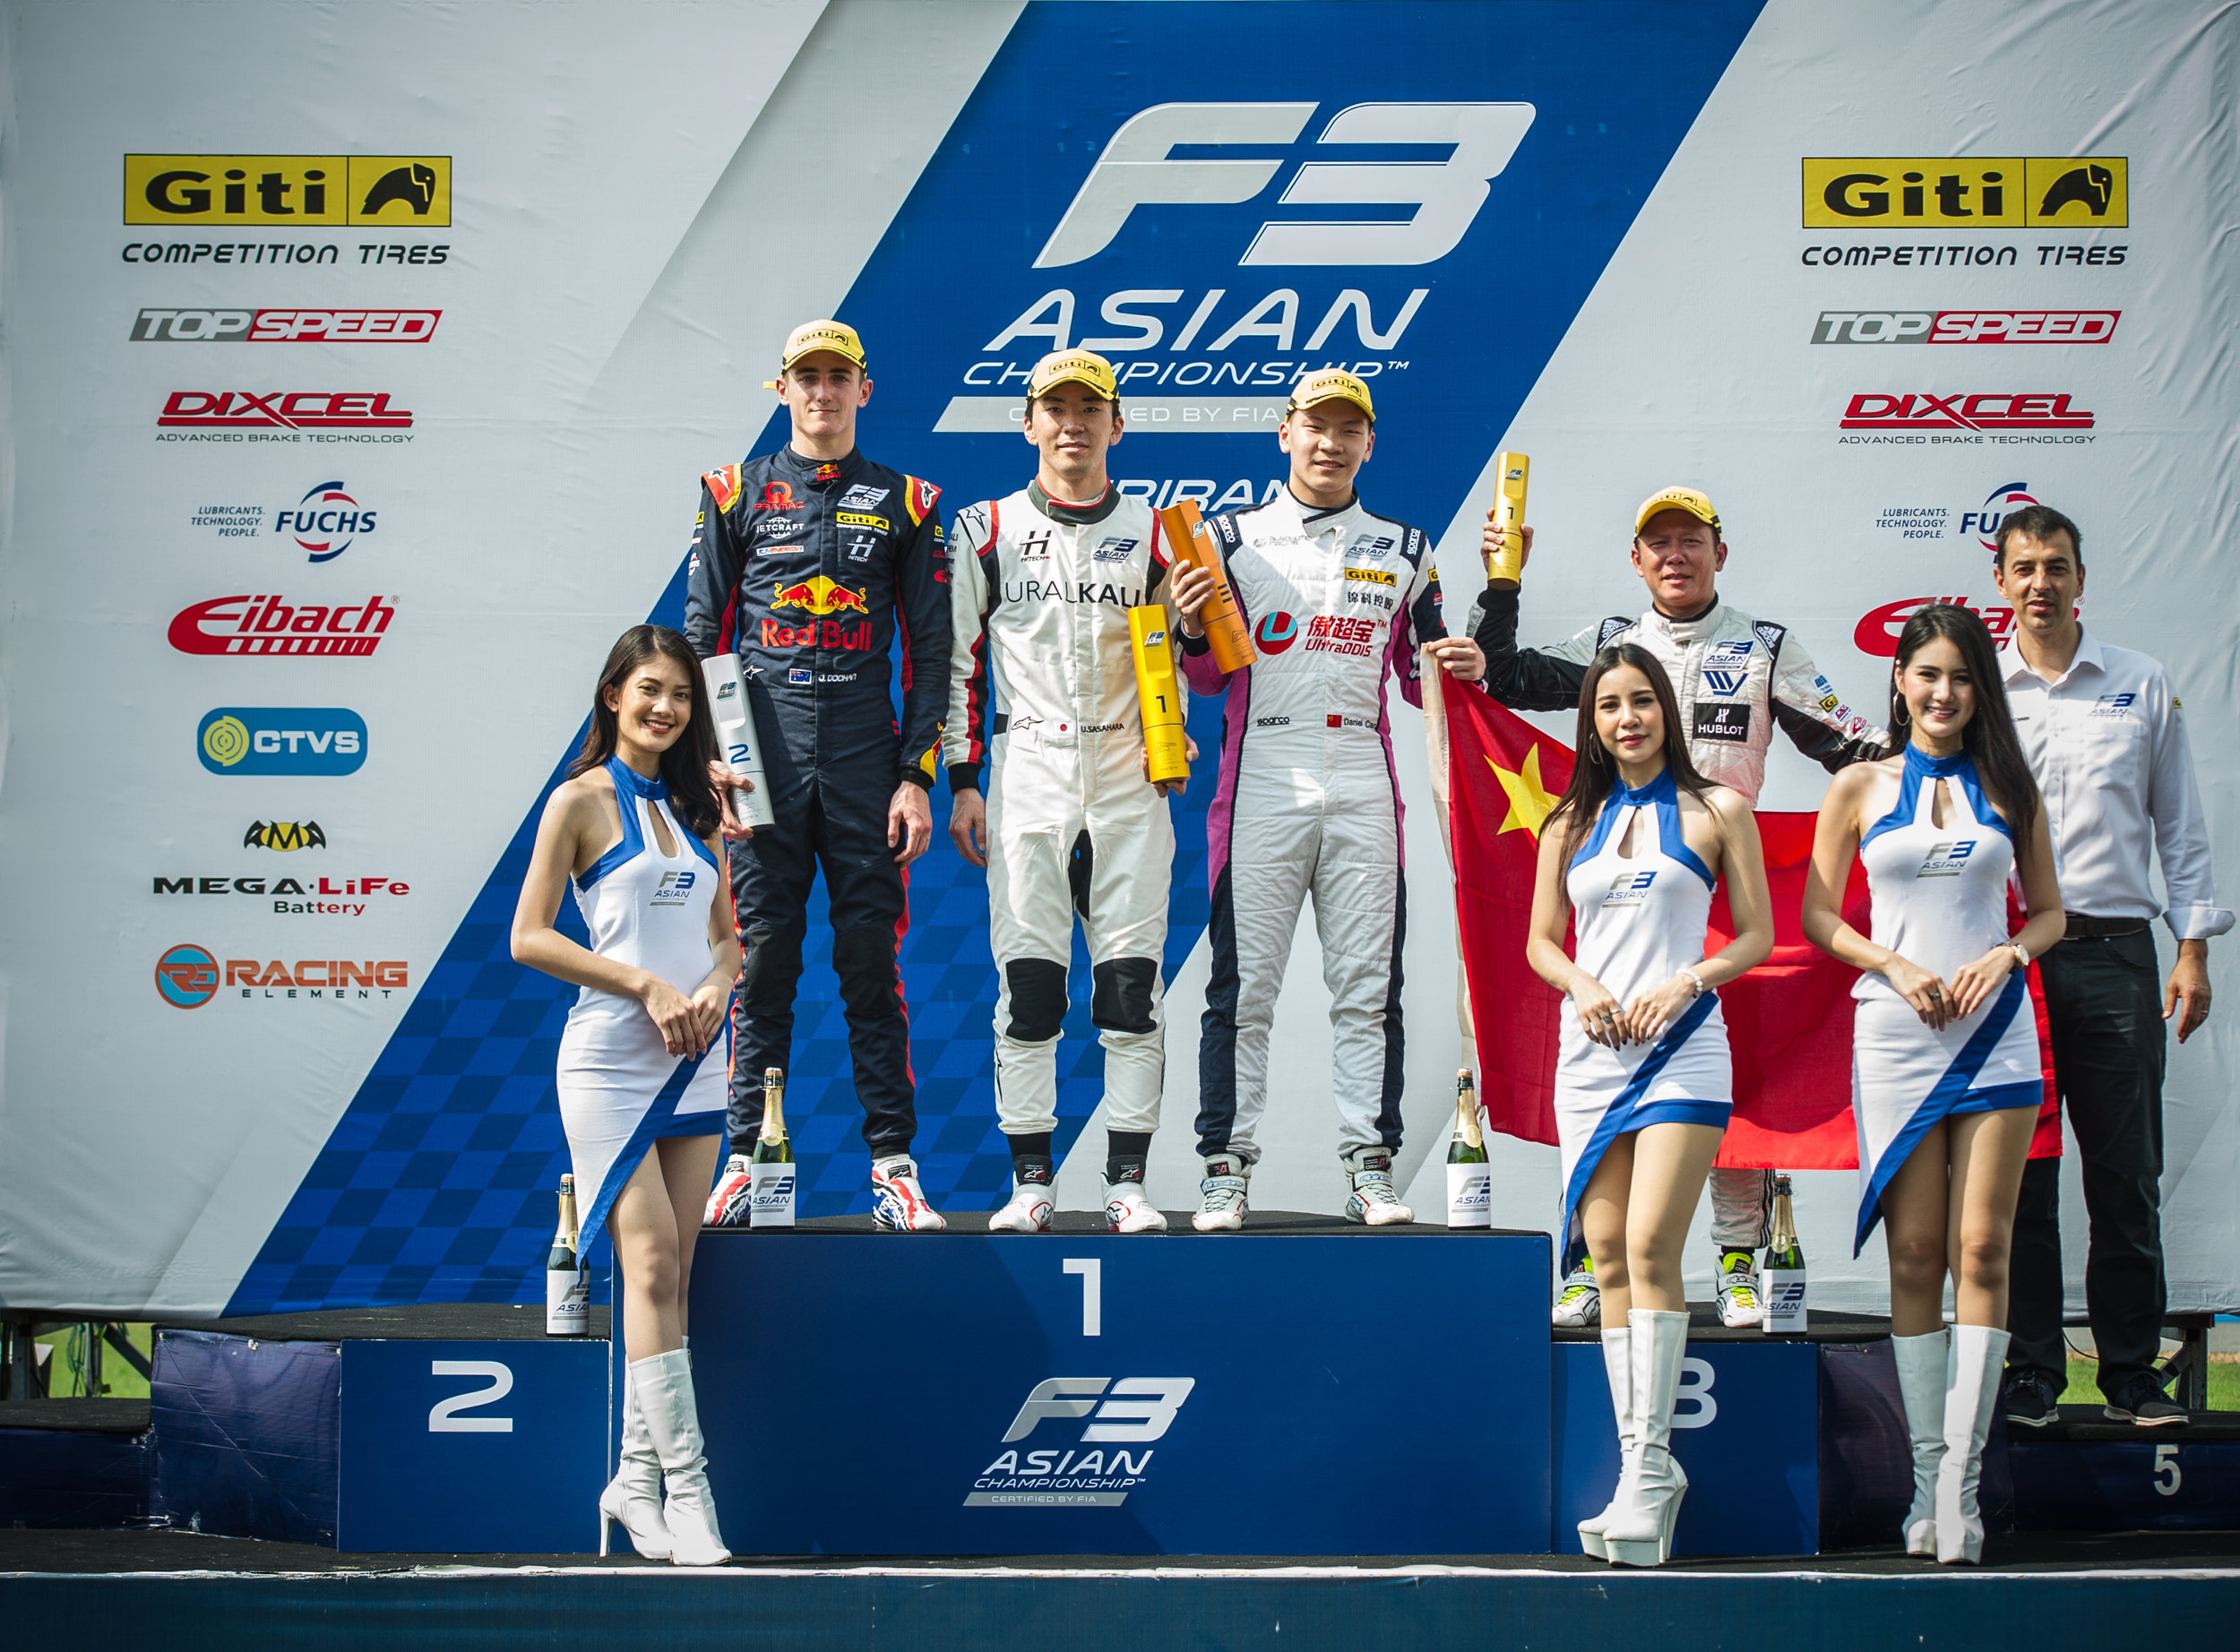 Ukyo Sasahara on the top step of the Race 4 podium.